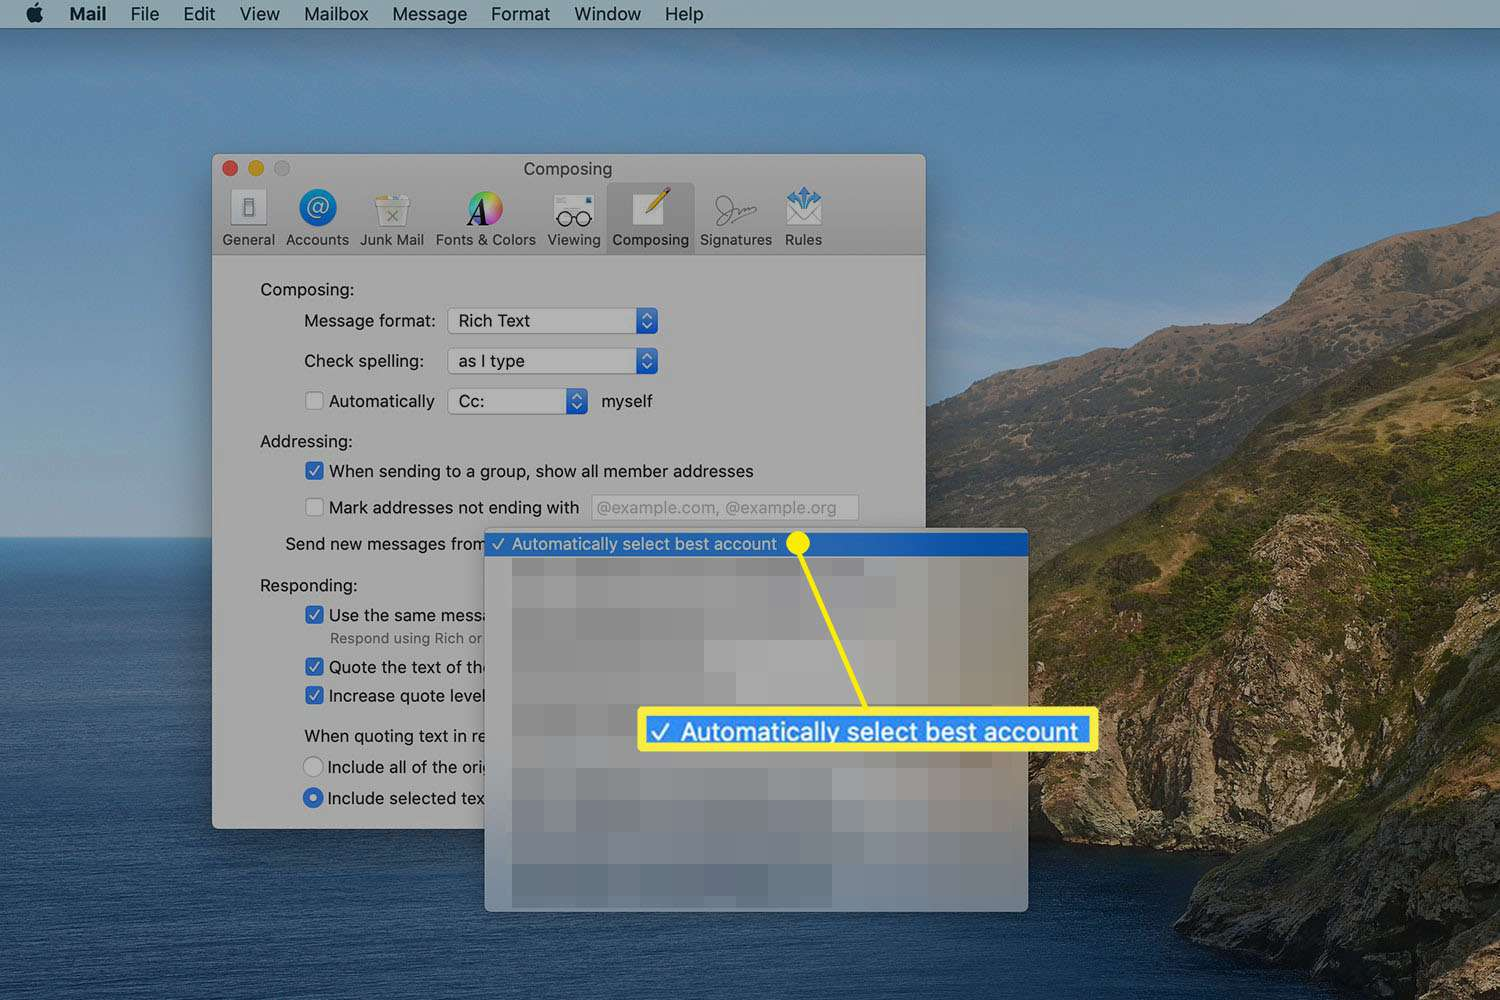 Composing preferences in Mac Mail